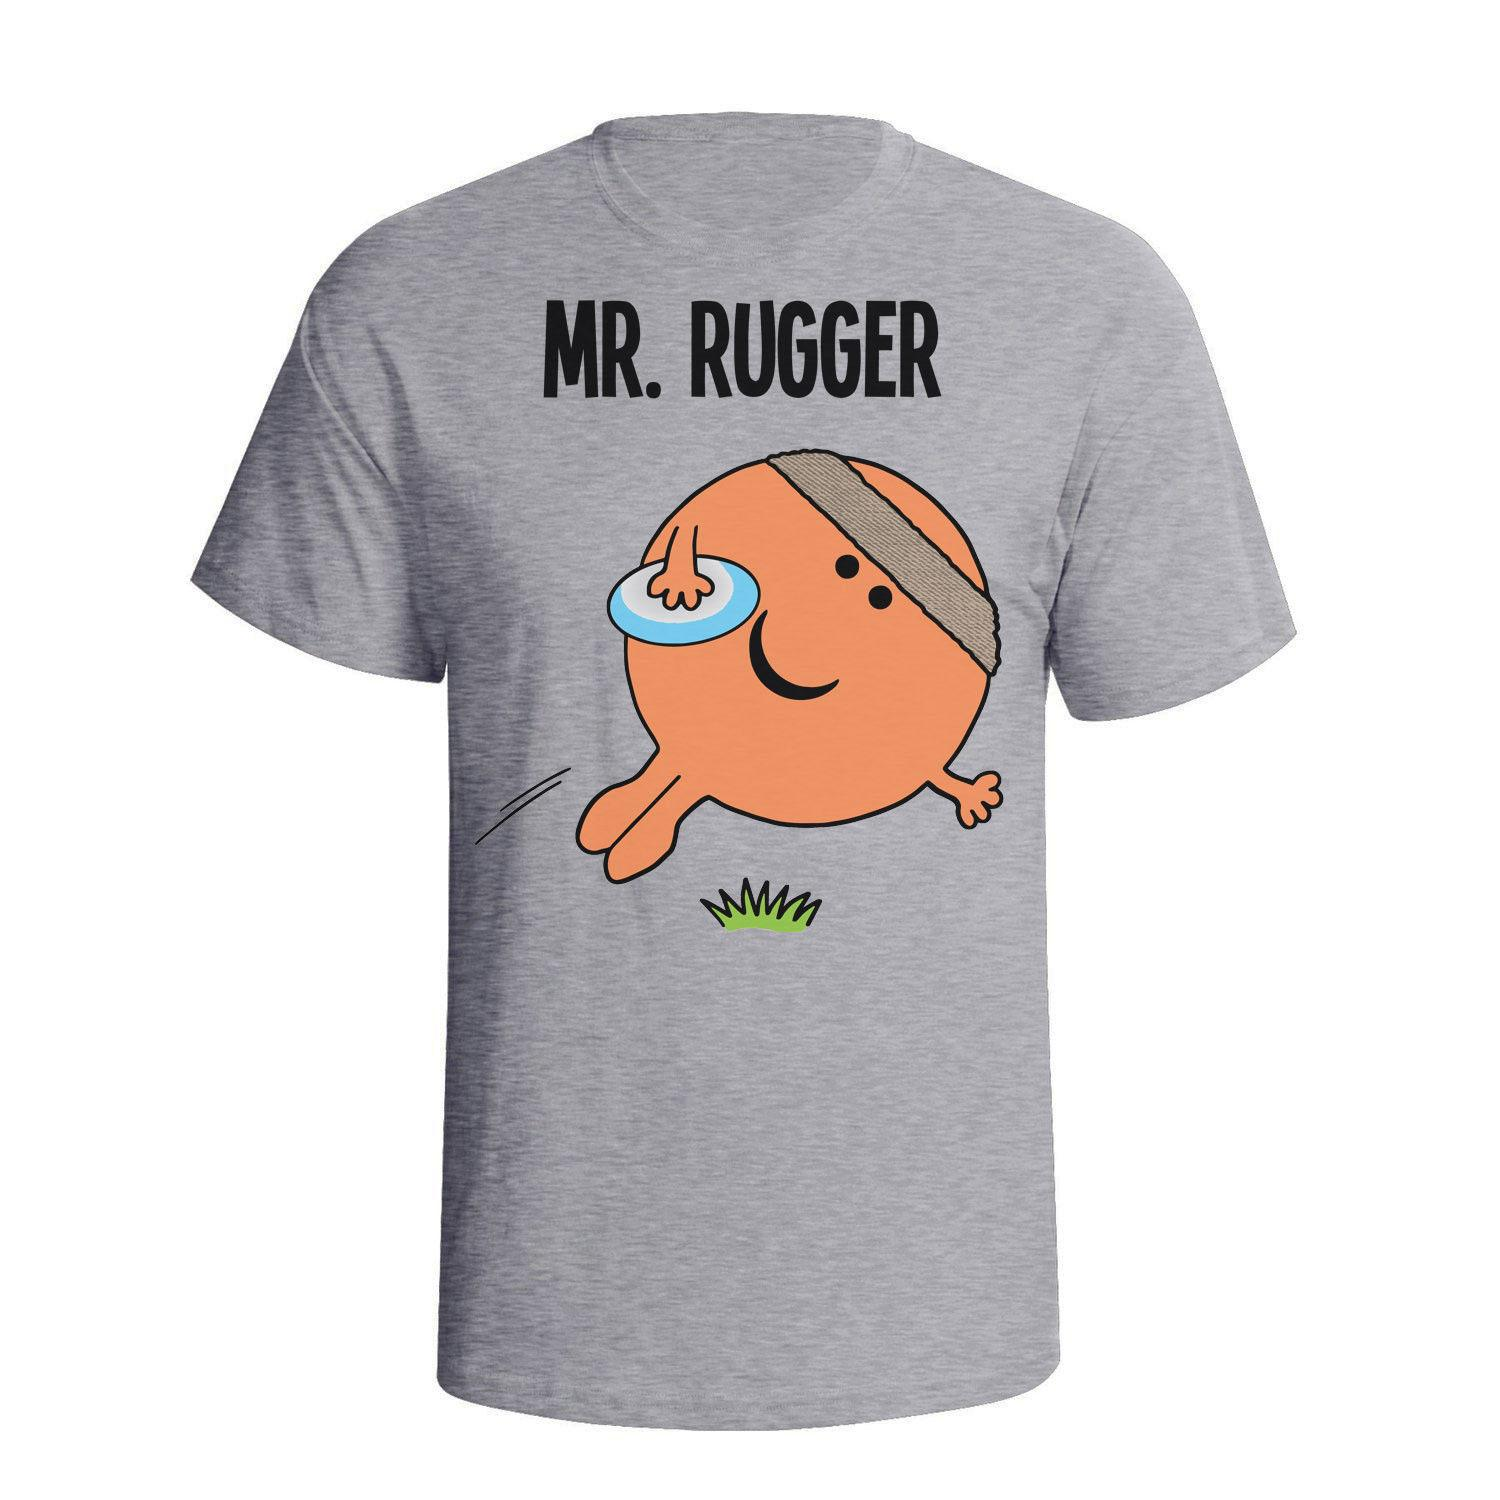 dbf900e6c3b Mr Rugger RUGBY Mens T Shirt Christmas Fathers Day Gift Birthday Sport  Summer Hot Sale New Tee Print Men T Shirt Top 2017 New Shop T Shirts Online  T Shirt ...